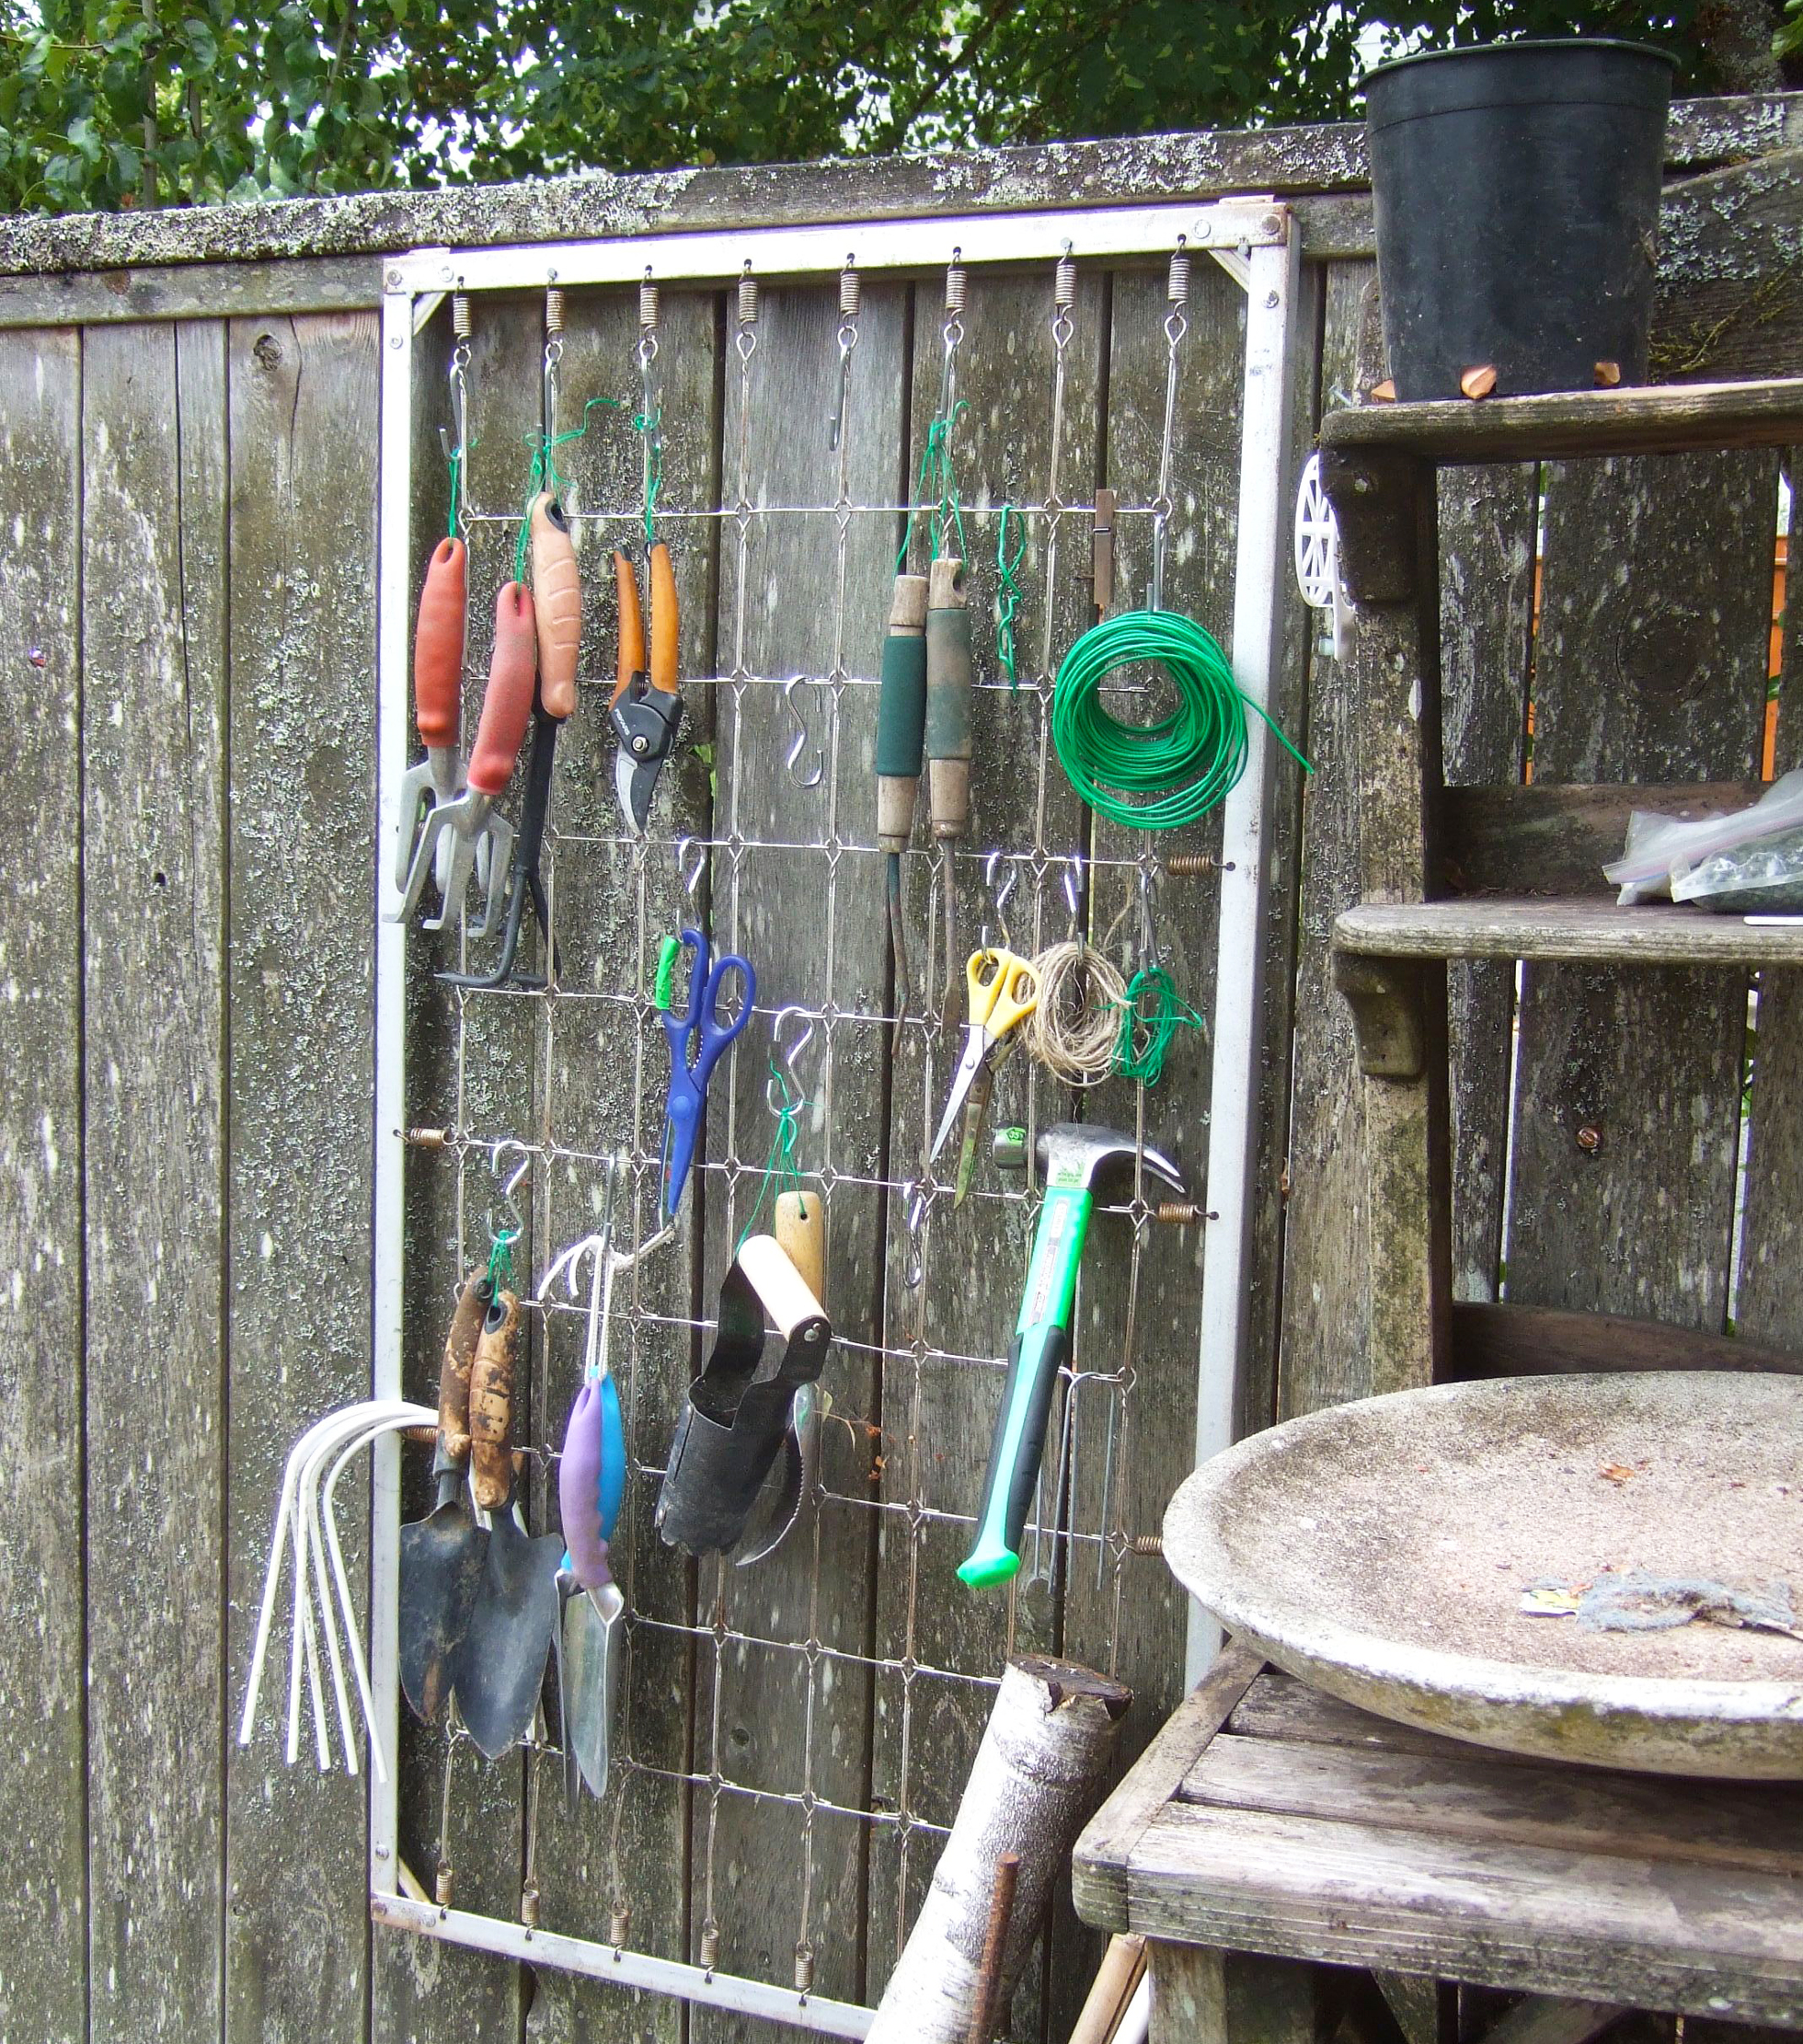 Upcycled garden tool organizer